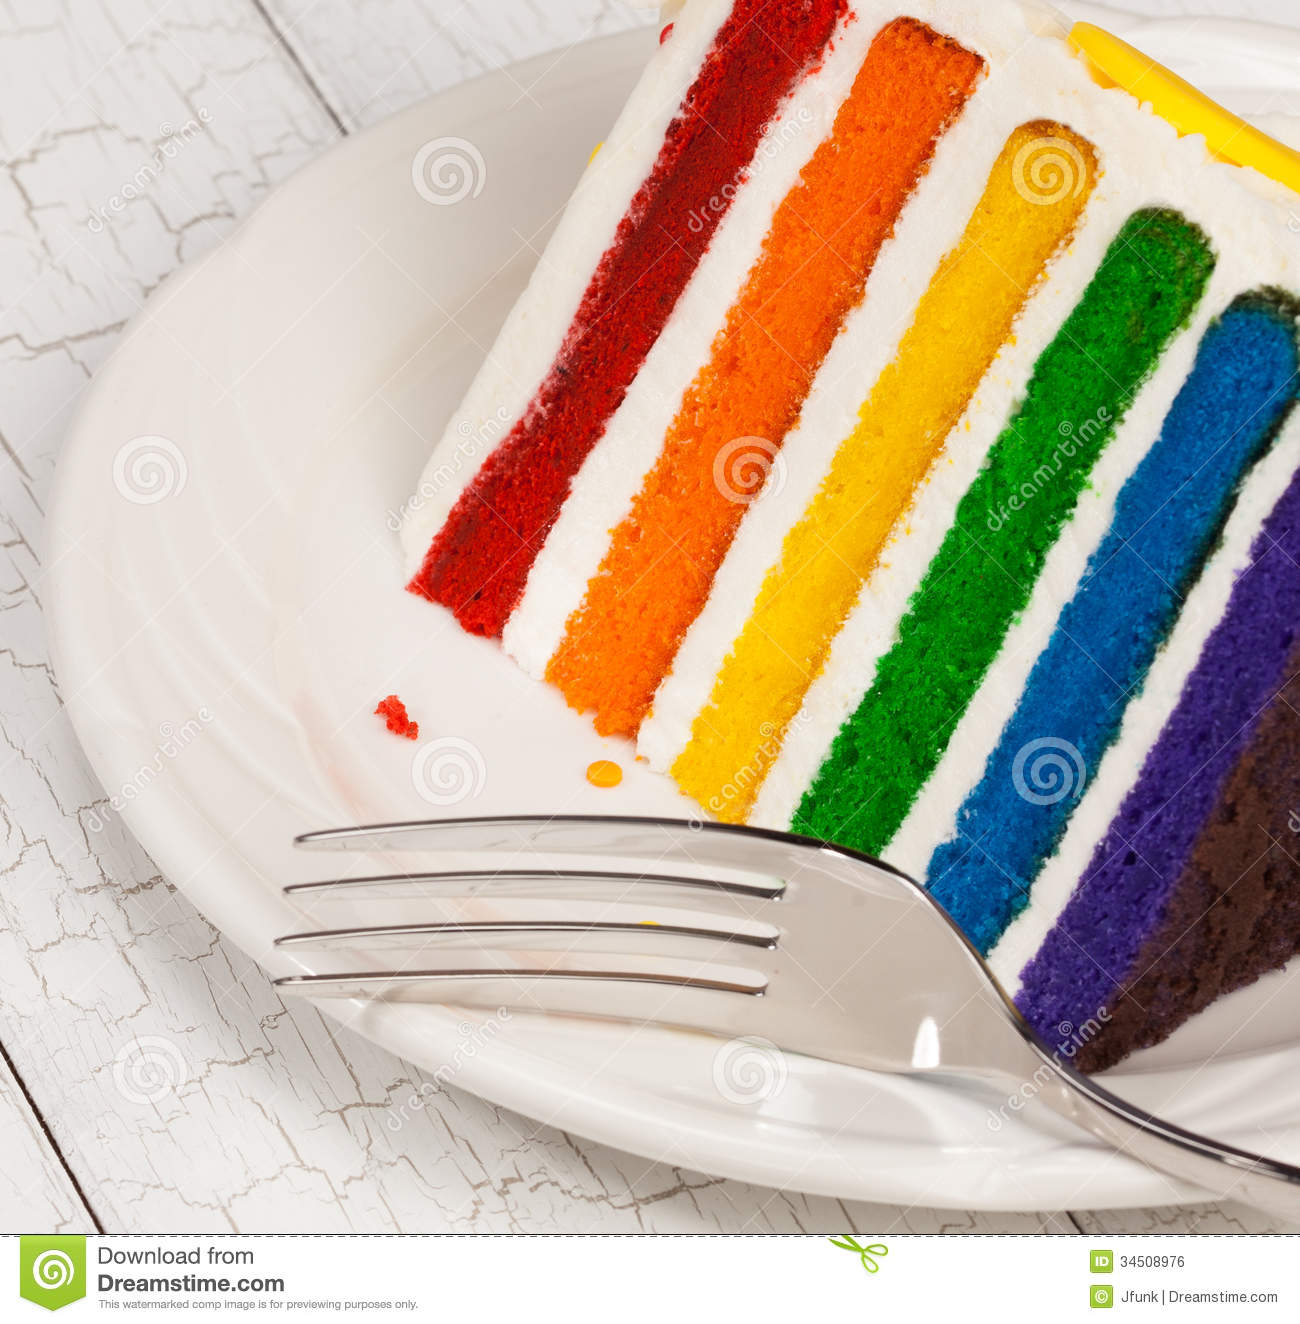 Slice Of Colourful Rainbow Layered Birthday Cake Decorated With Sprinkles And Buttercream Icing